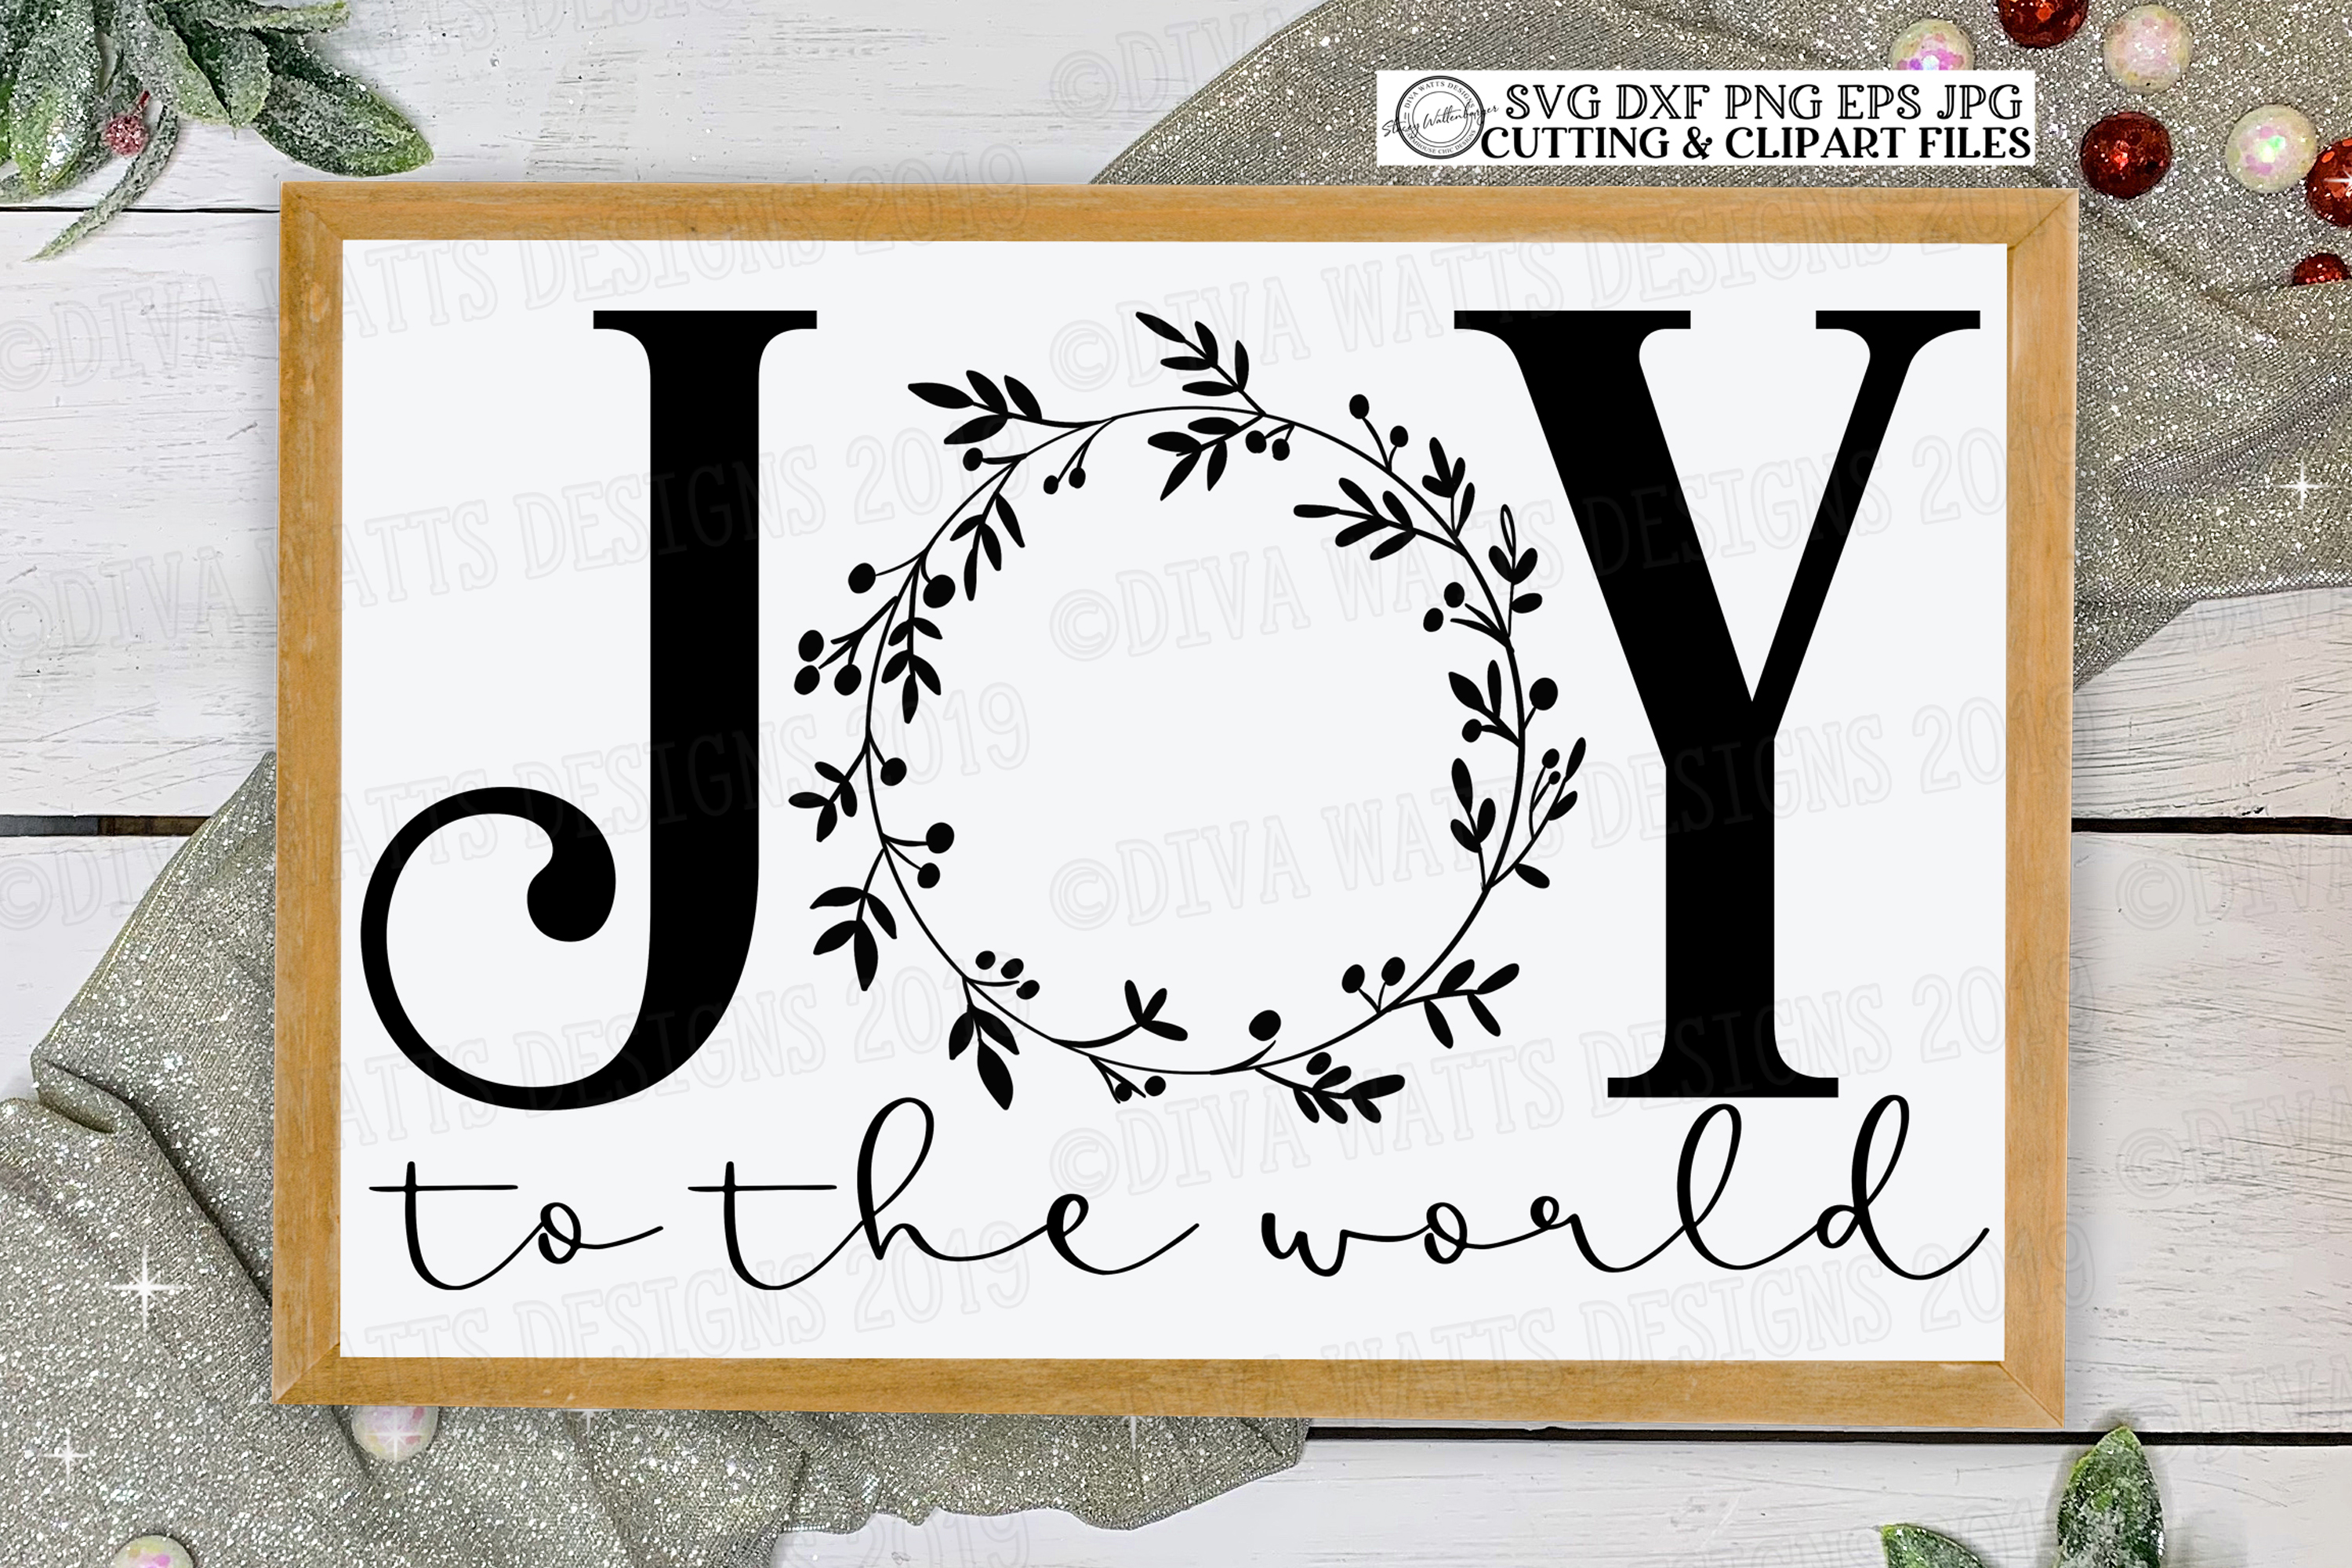 Joy To The World with Wreath Cutting File for Christmas example image 1